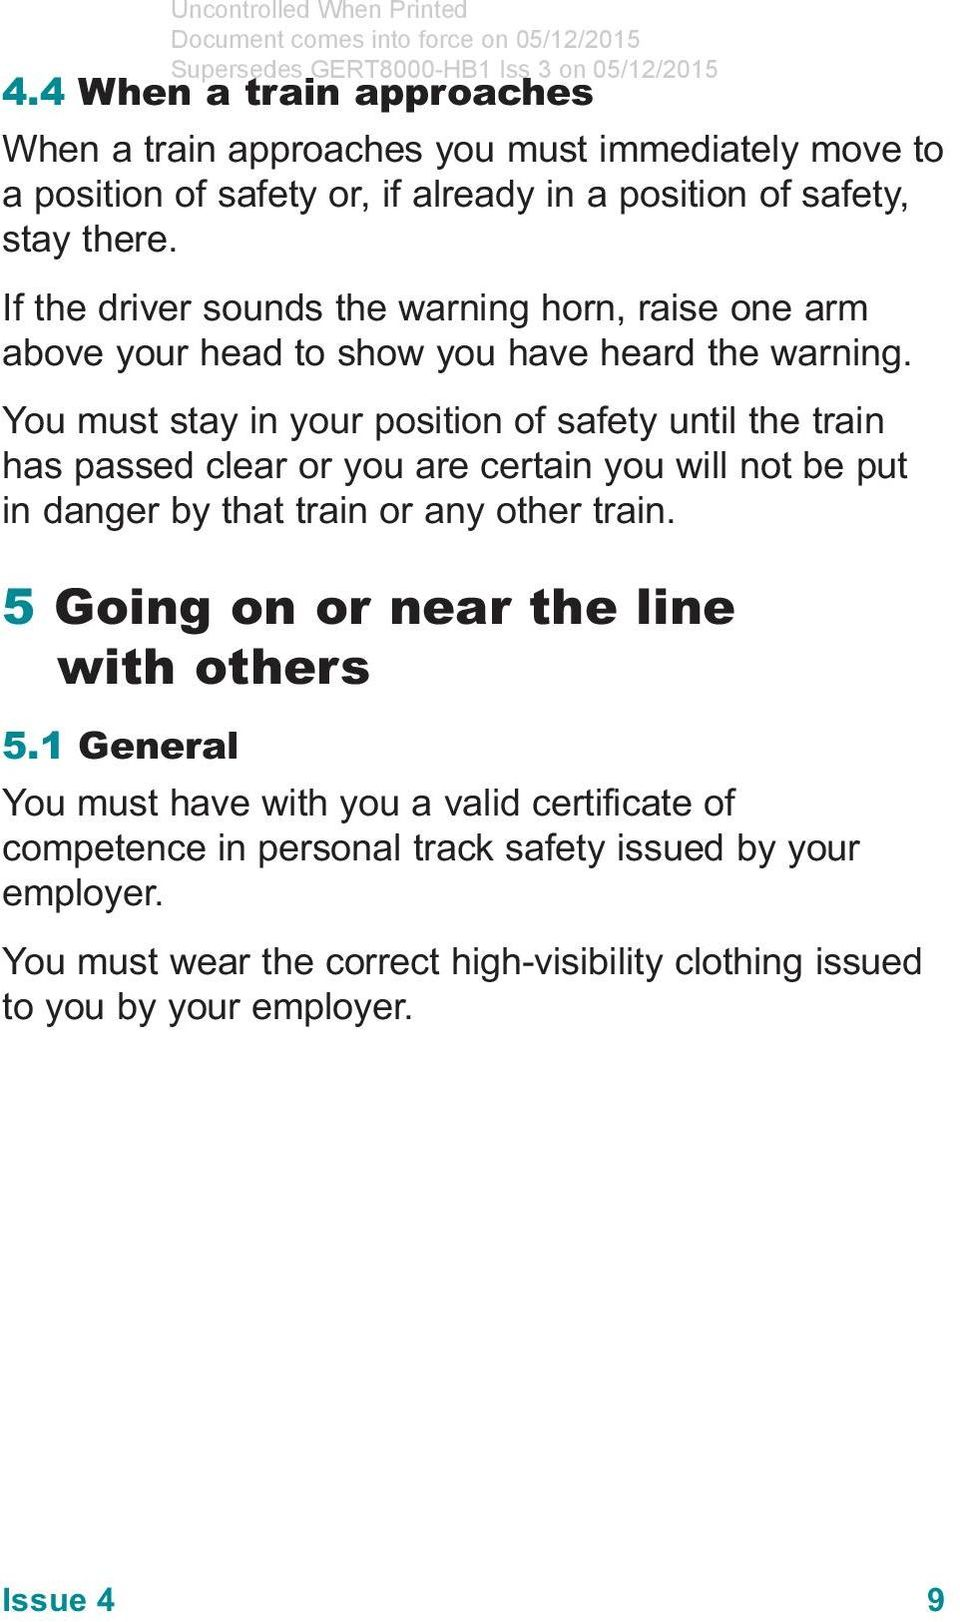 You must stay in your position of safety until the train has passed clear or you are certain you will not be put in danger by that train or any other train.